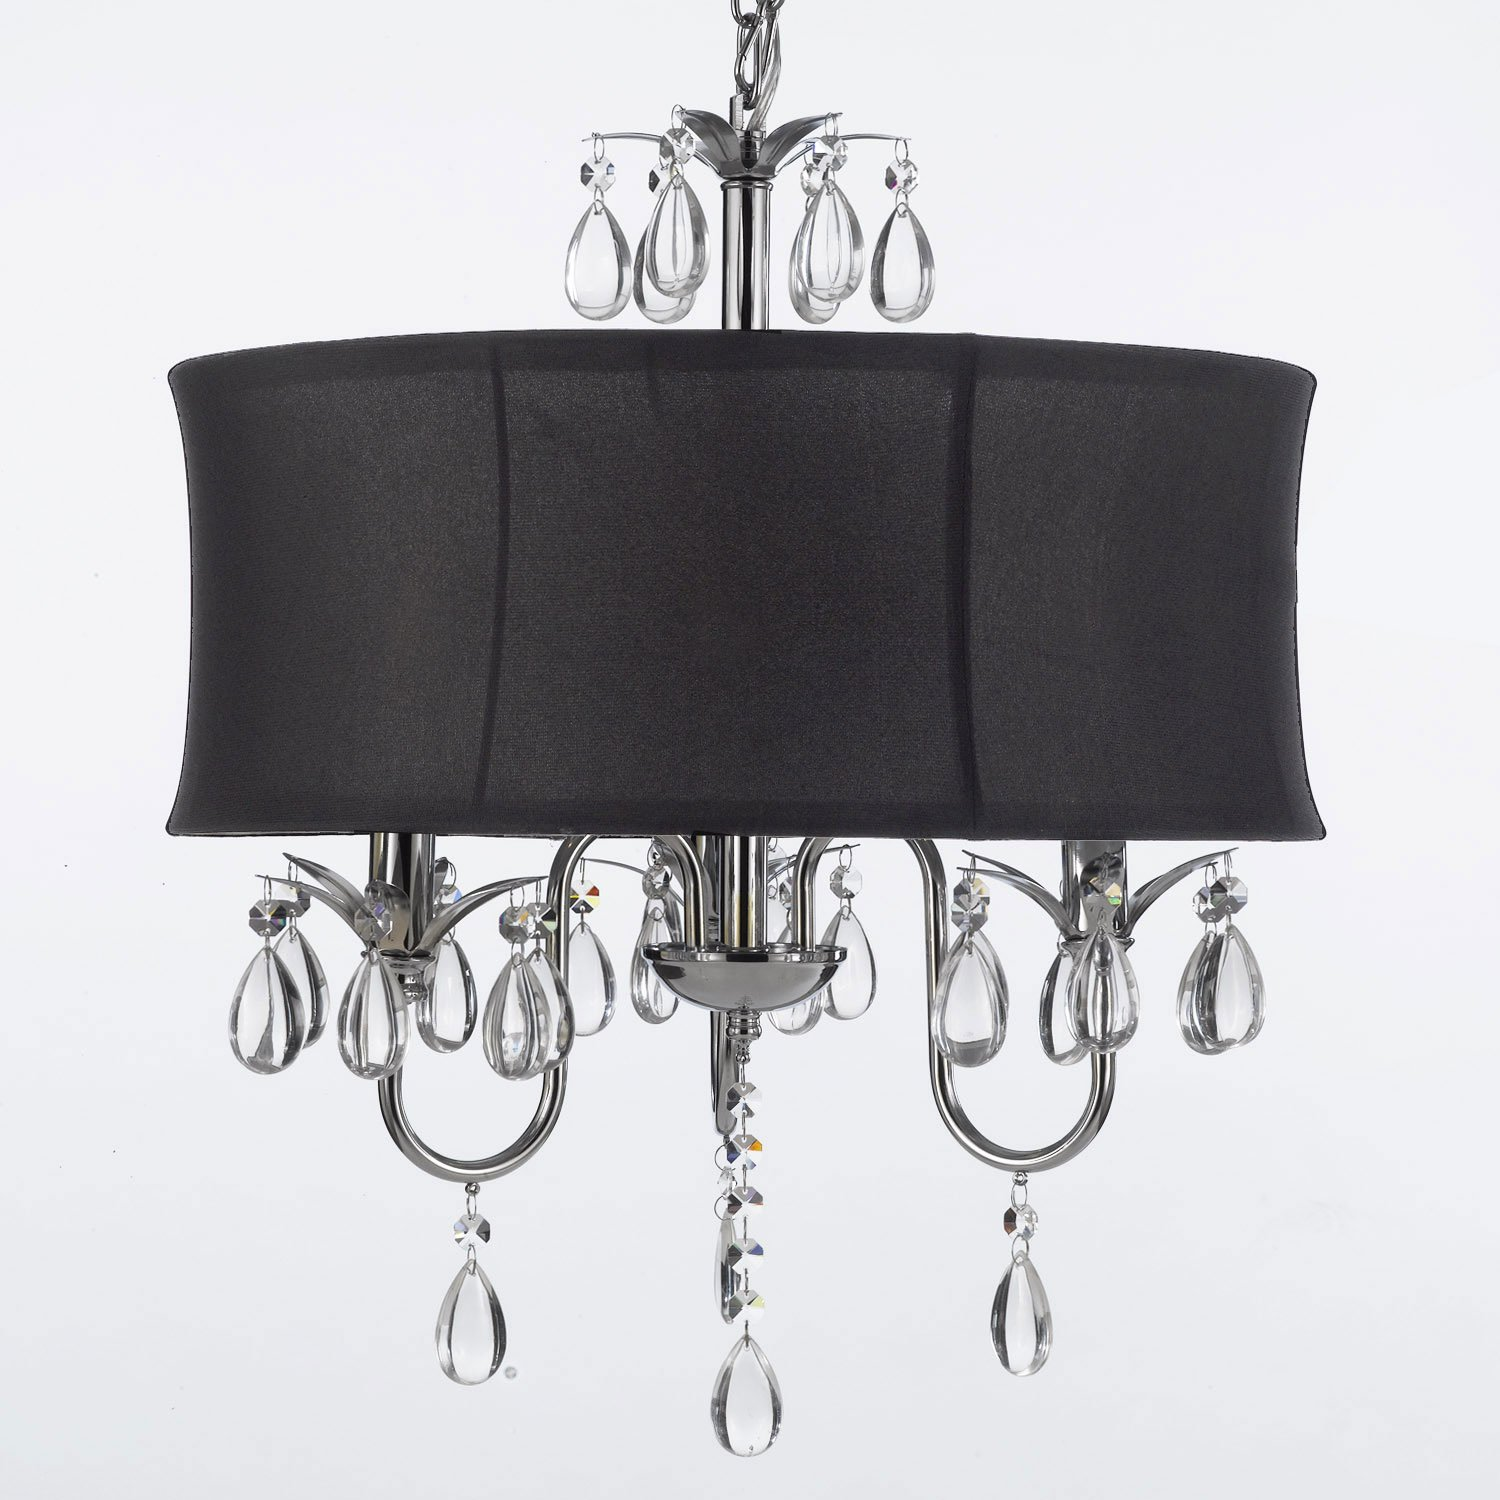 Modern Contemporary Black Drum Shade Crystal Ceiling Chandelier Pendant Lightning Fixture Fan Com